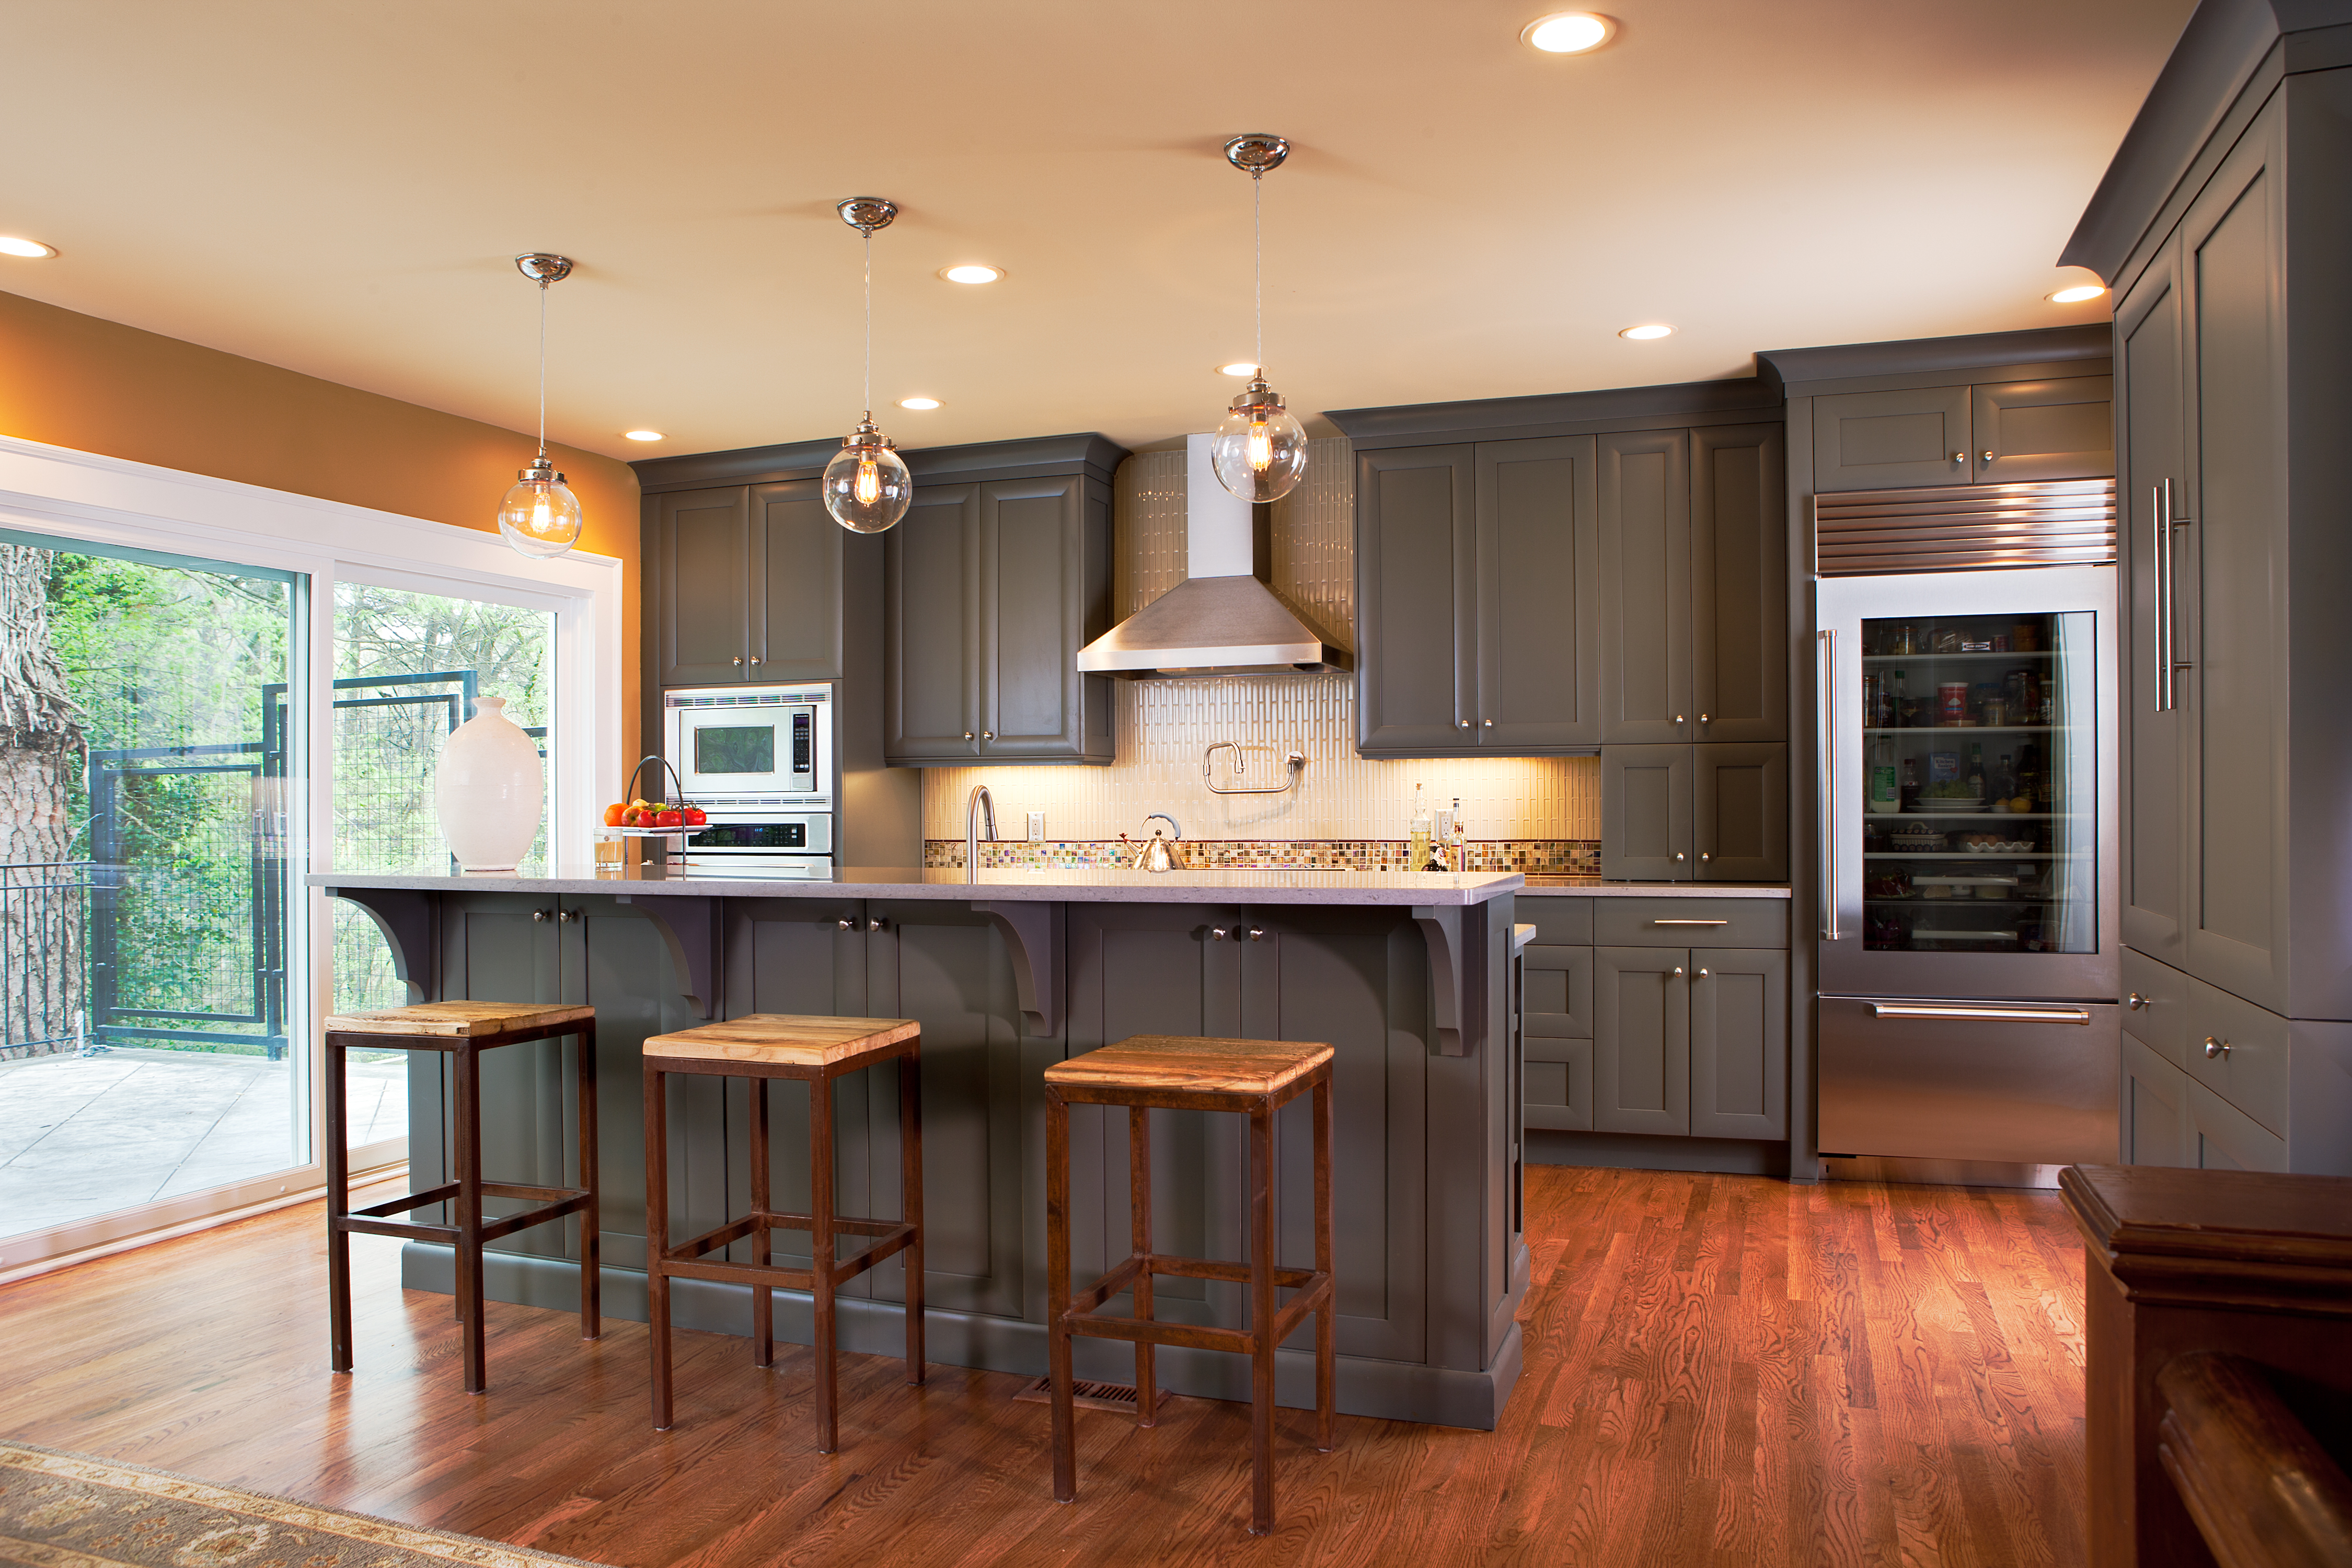 Gray Cabinets And Wooden Floor